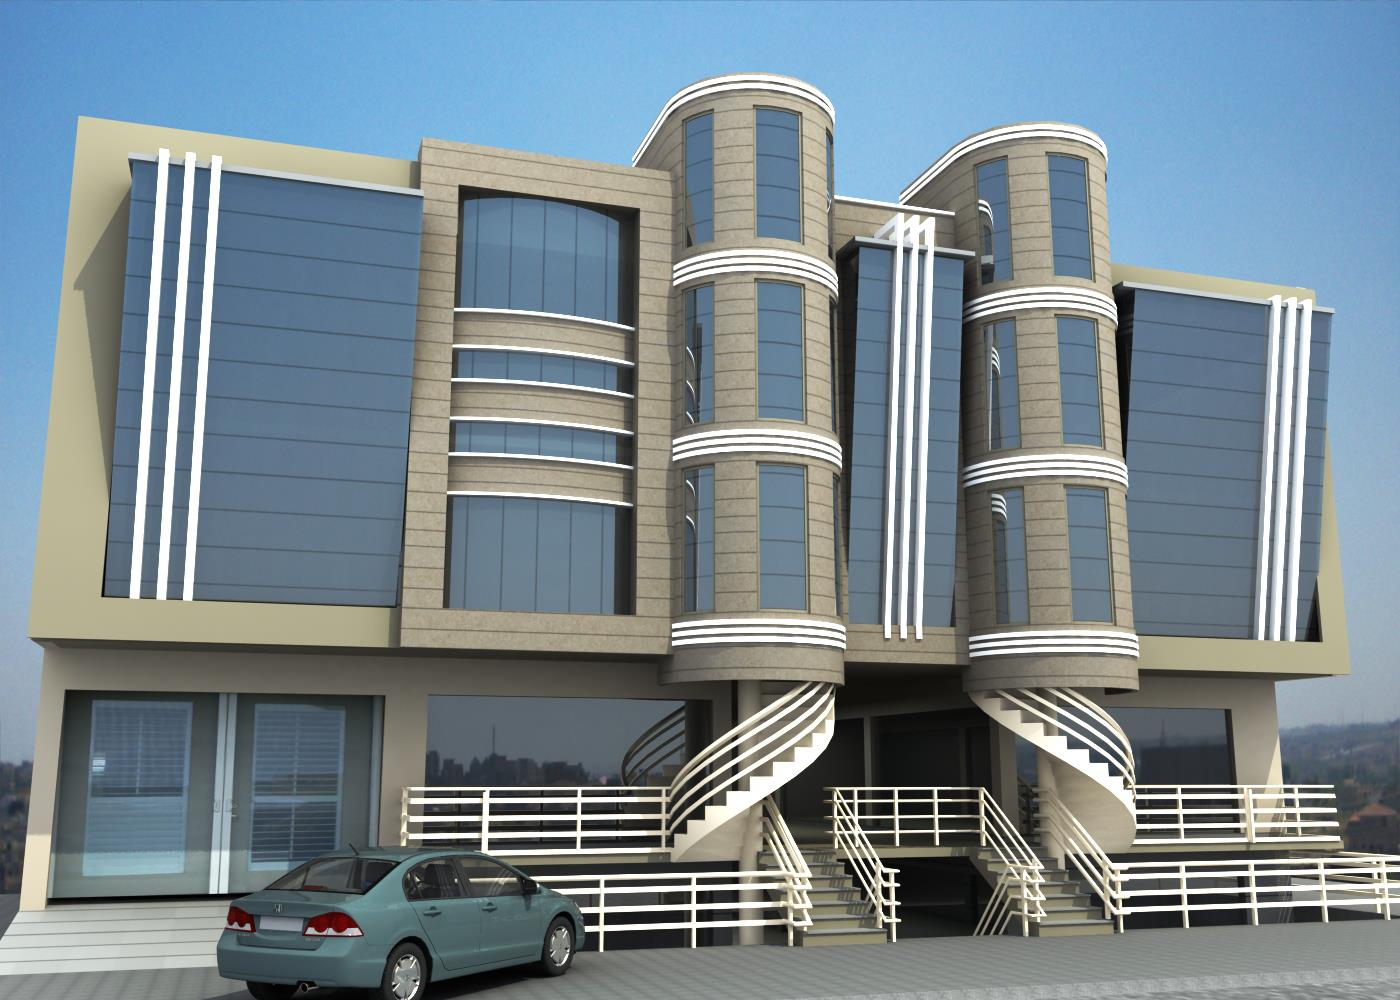 Commercial buildng design 3d architecture visualizations for Architectural commercial design